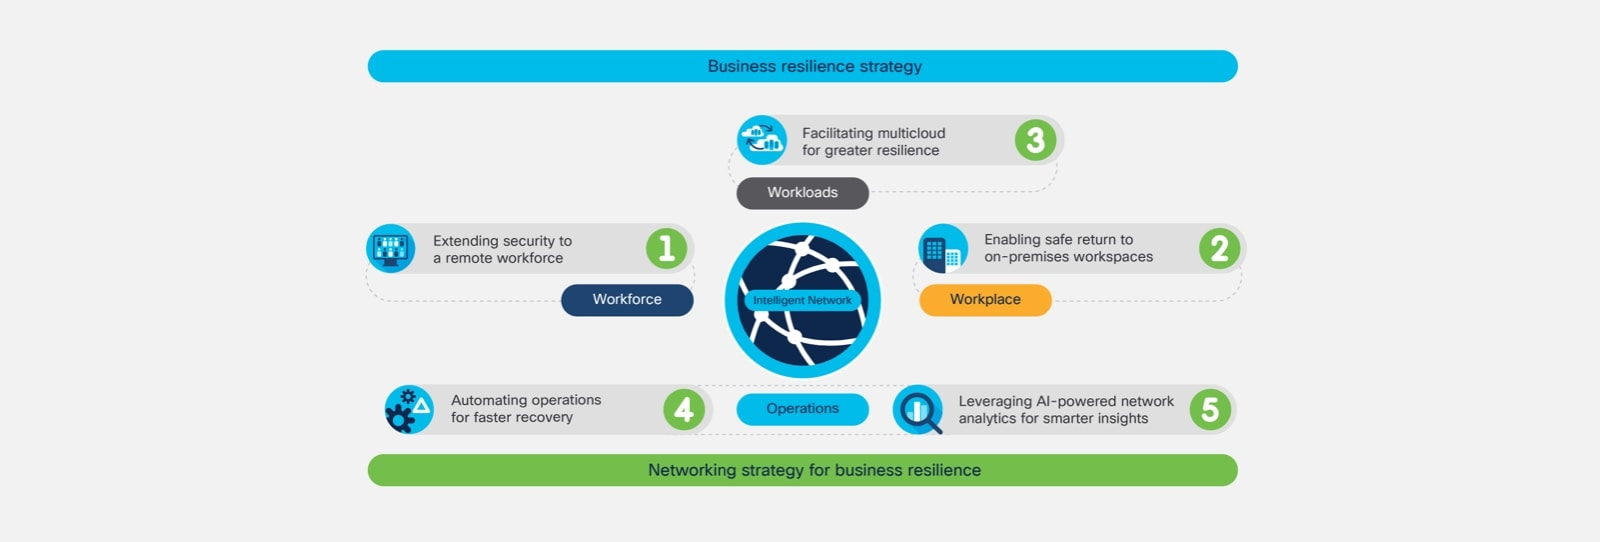 Figure 2. Network foundation for workforce, workplace, workload and operational resilience